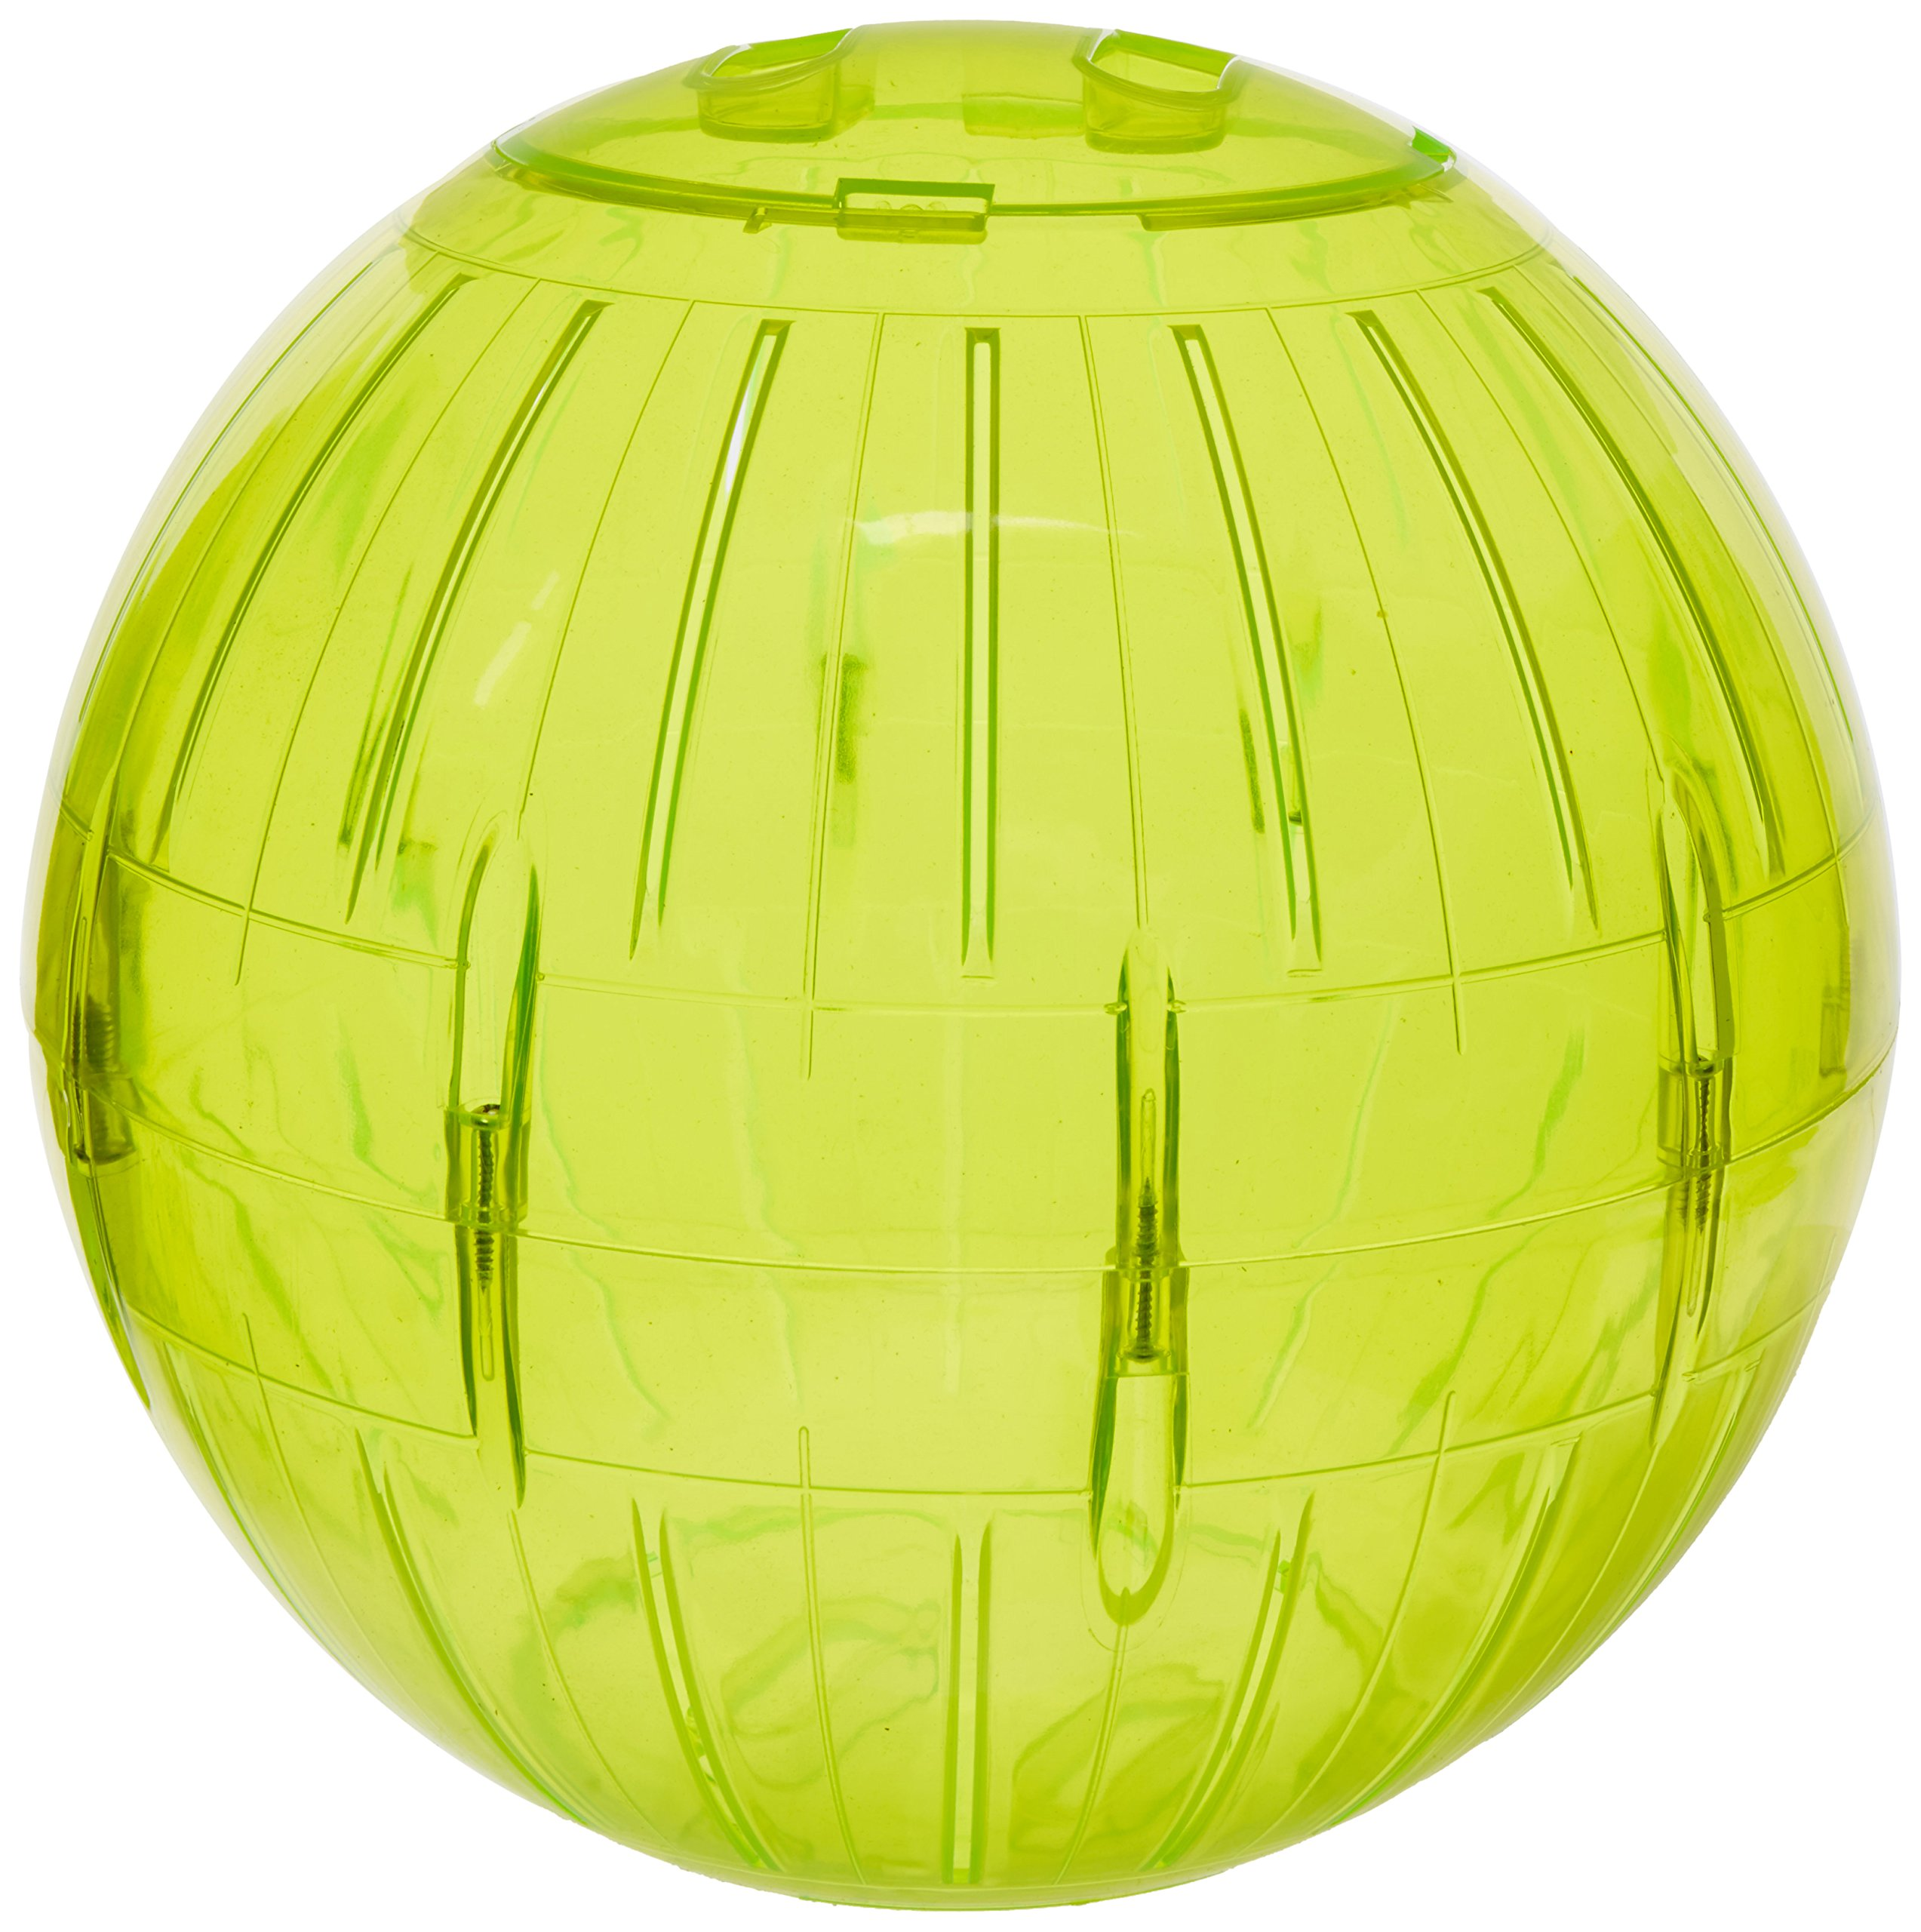 Lee's Kritter Krawler Giant Exercise Ball, 12-1/2-Inch, Colored by Lee's (Image #1)